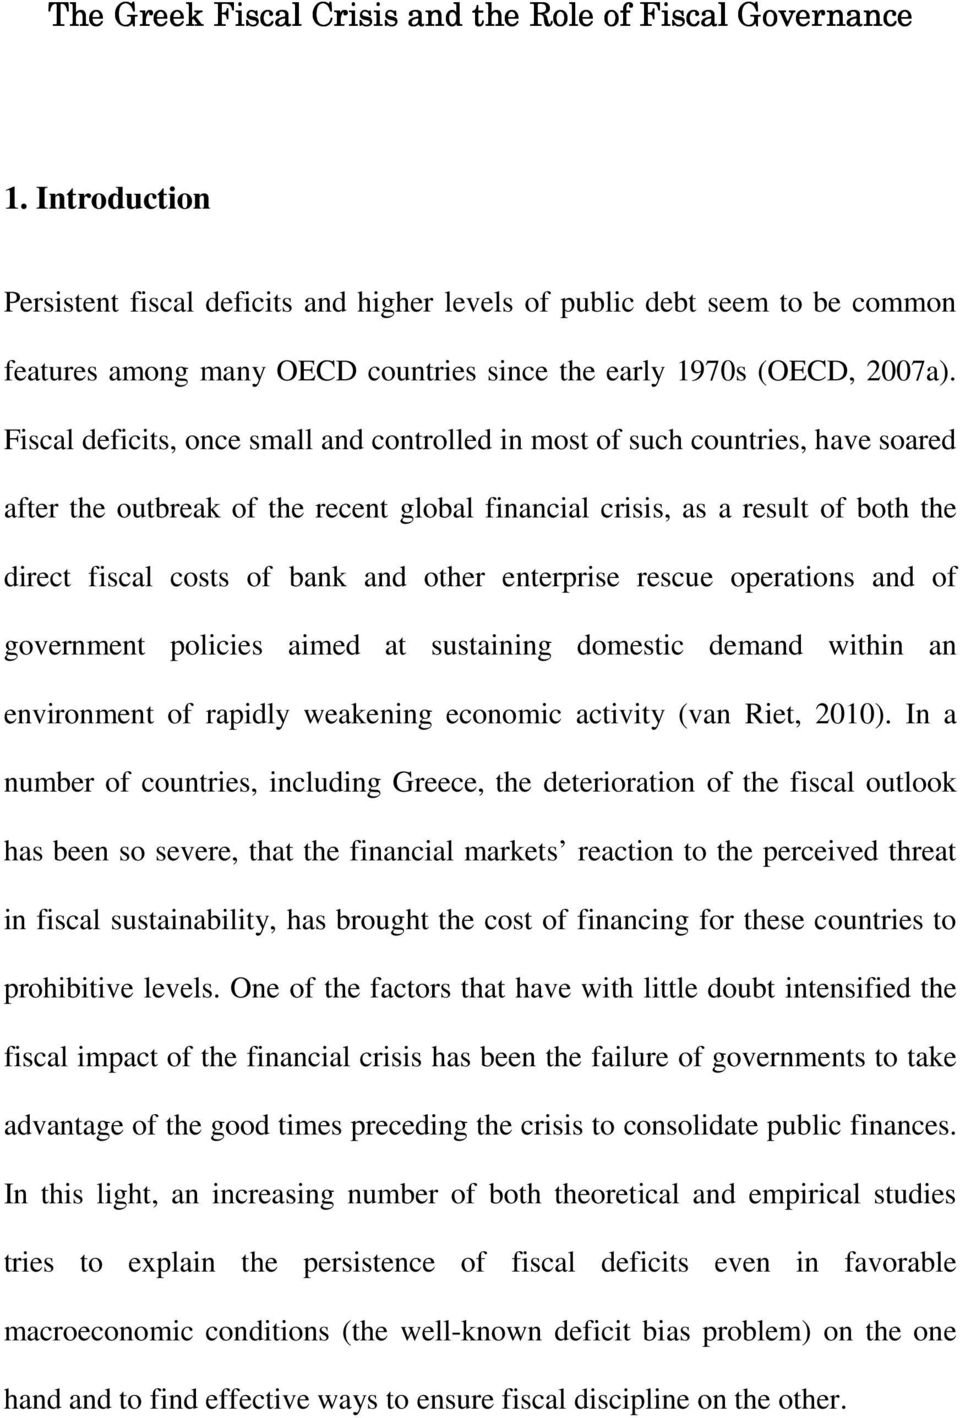 Fiscal deficits, once small and controlled in most of such countries, have soared after the outbreak of the recent global financial crisis, as a result of both the direct fiscal costs of bank and